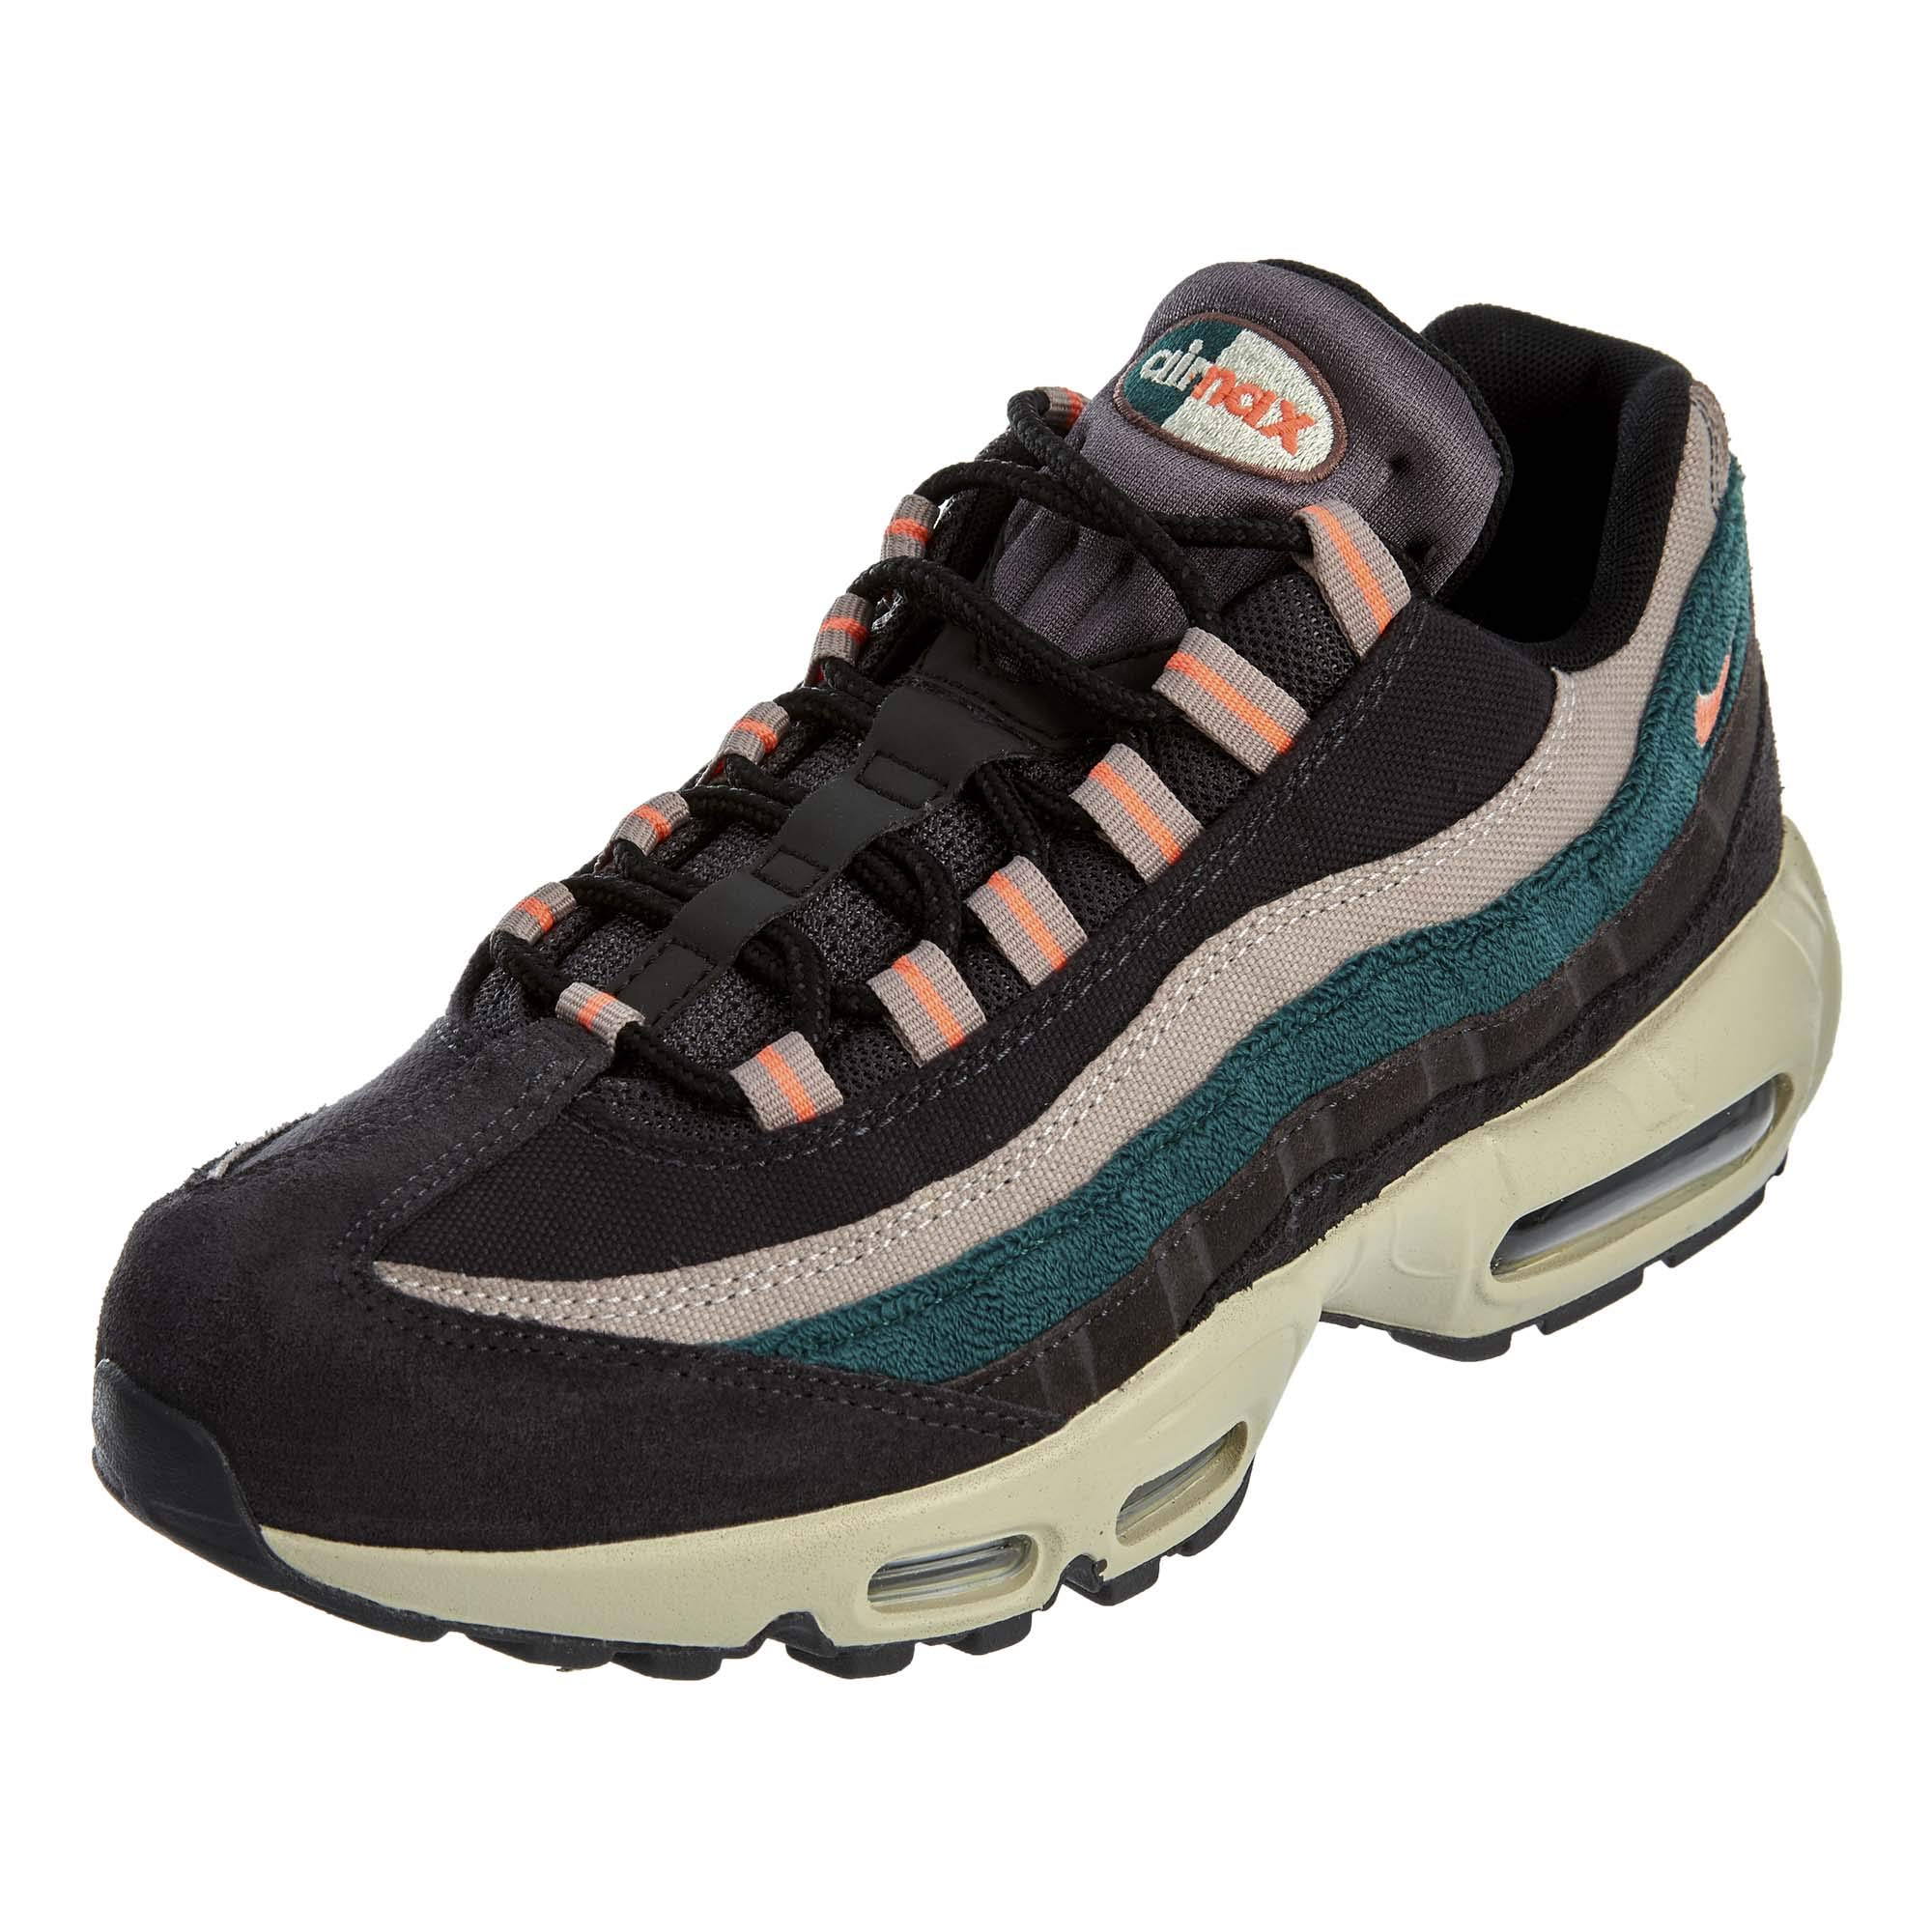 best authentic 3a810 d92a4 Galleon - NIKE Air Max 95 PRM Mens Style  538416-018 Size  11